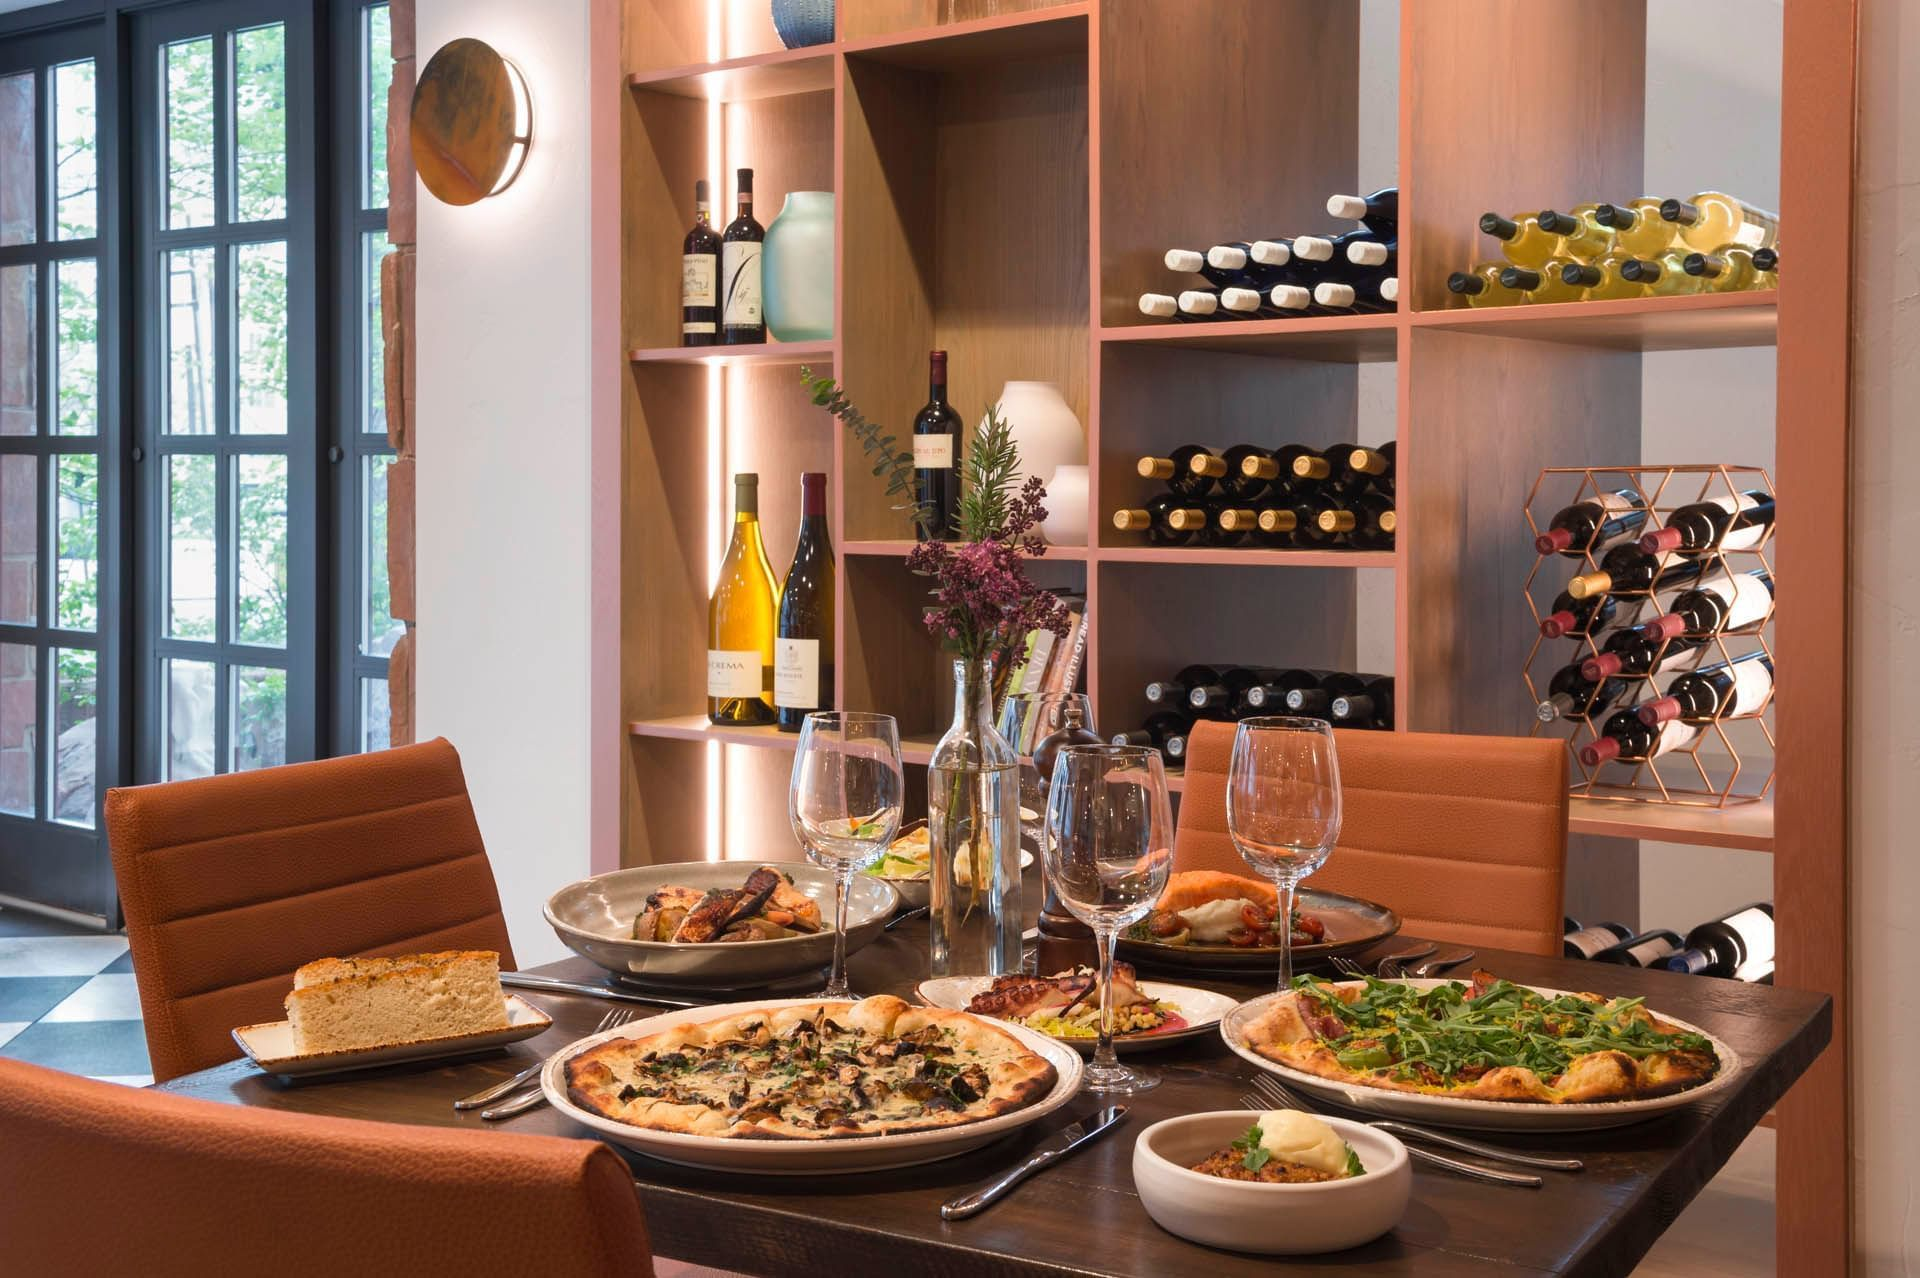 Gattara Restaurant Table with Food for 4 People